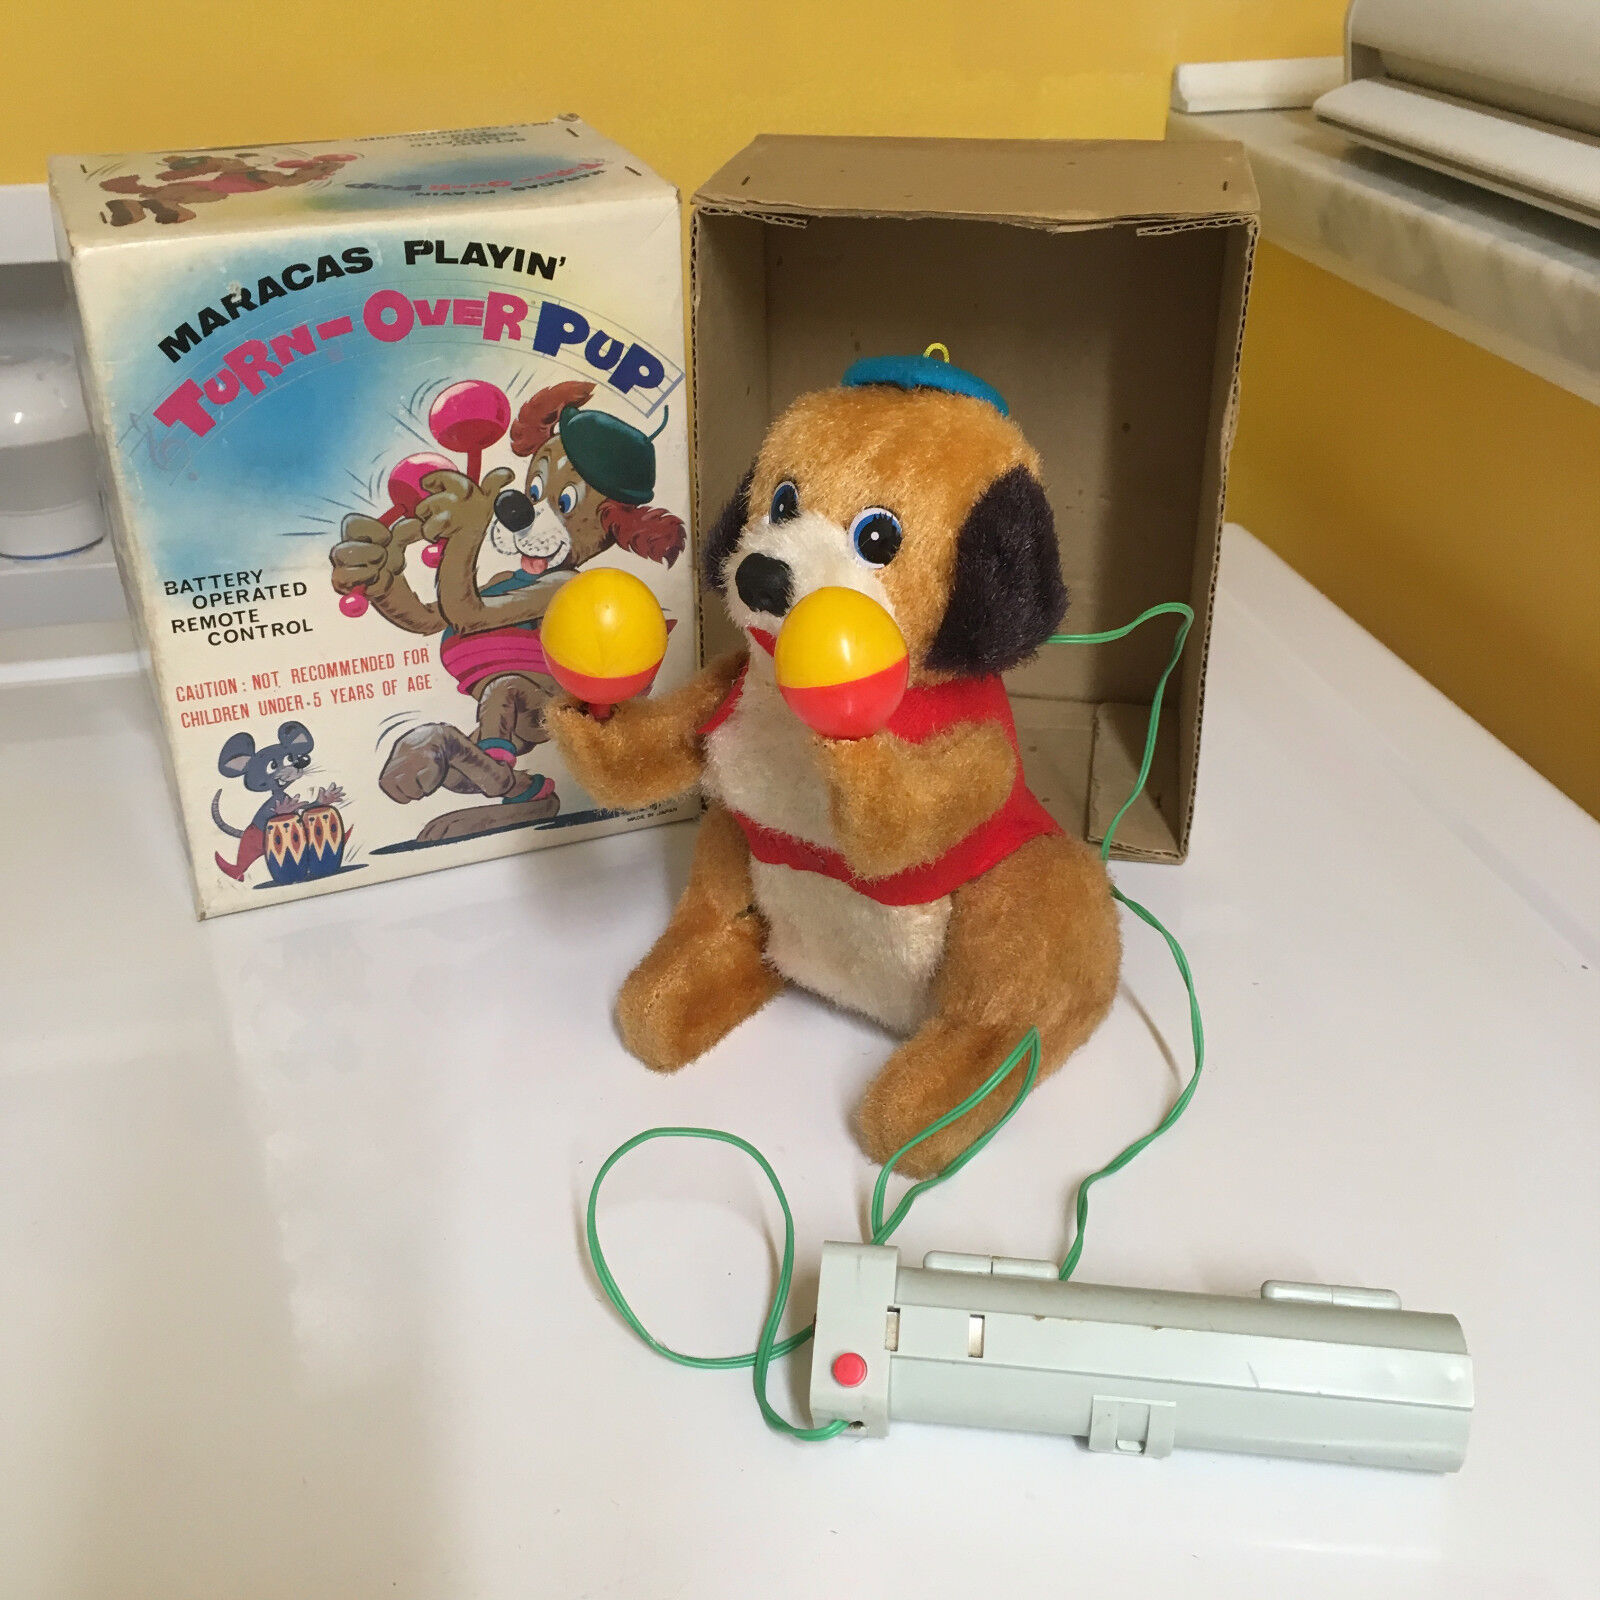 VINTAGE NOMURA TEATHERED R C TURN-OVER PUP FULLY WORKING WITH ORIGINAL BOX